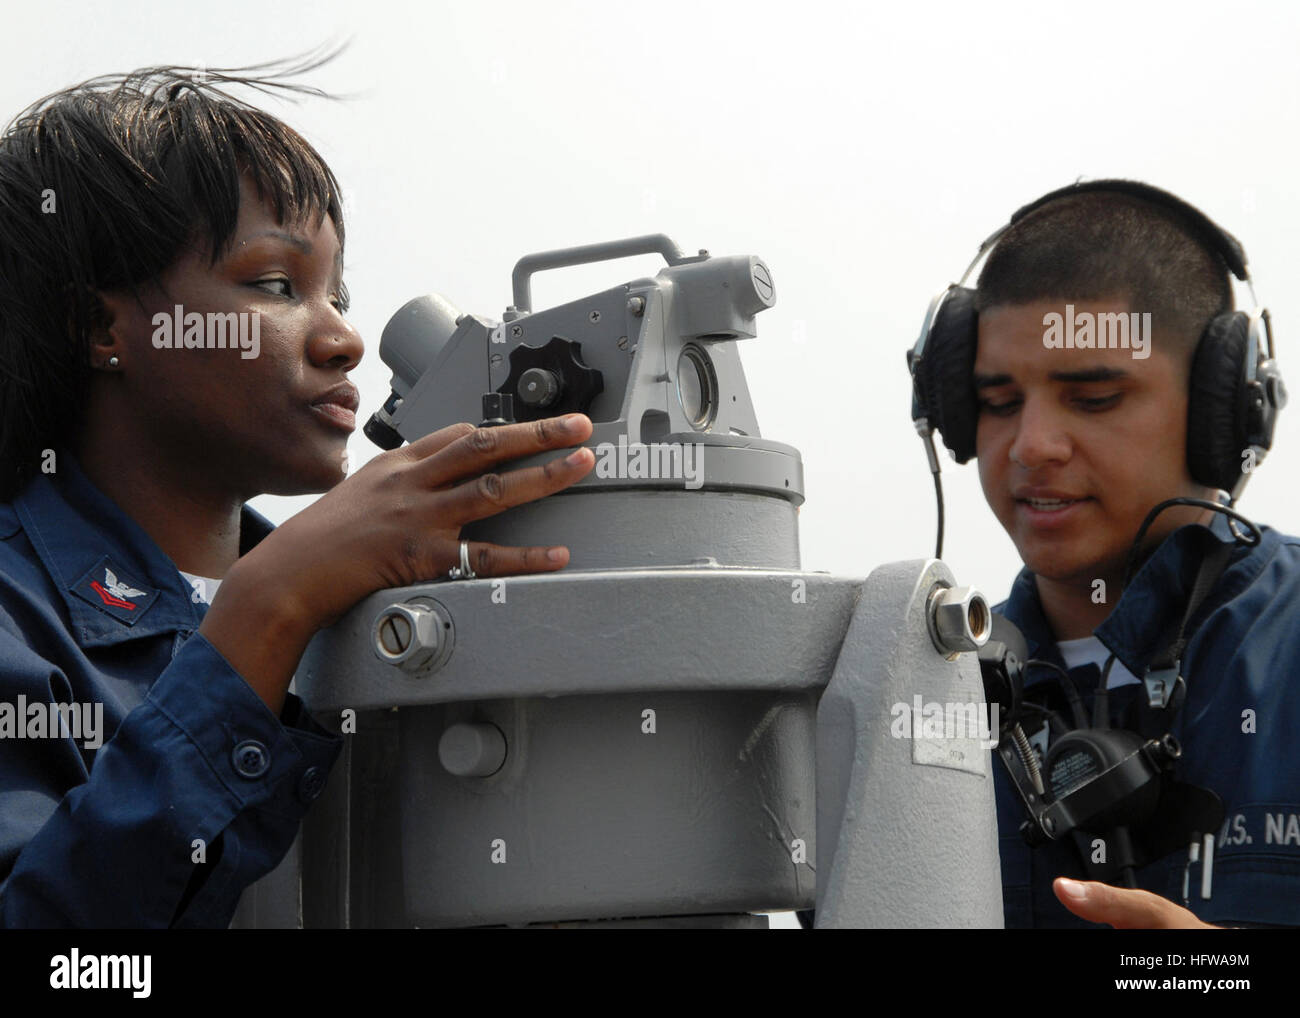 080708-N-9134V-010 ATLANTIC OCEAN (July 8, 2008) Quartermaster 3rd Class Perry Avila conducts on-the-job training - Stock Image